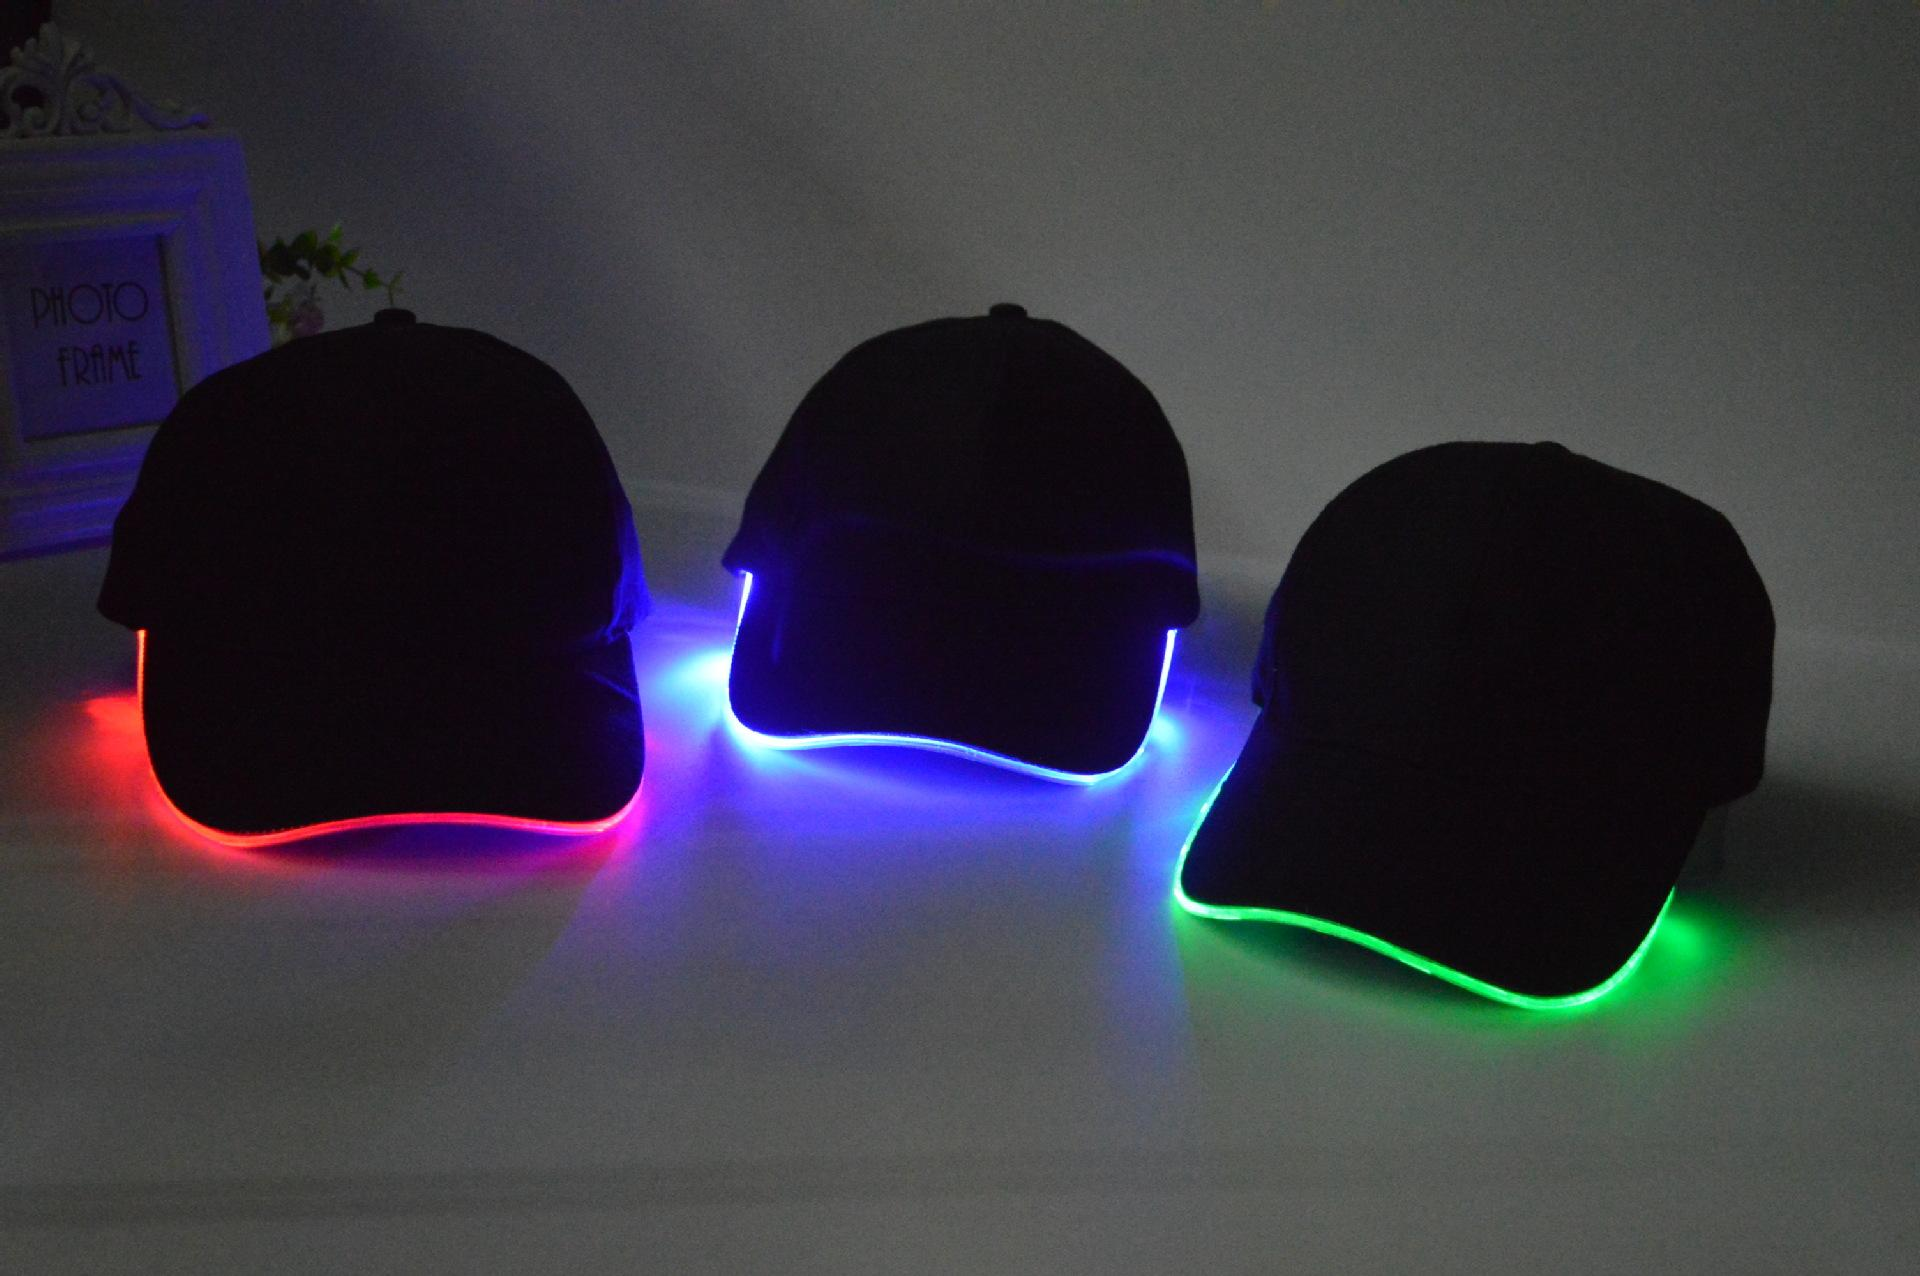 Led Caps The Led Light Up Store Global Family Products